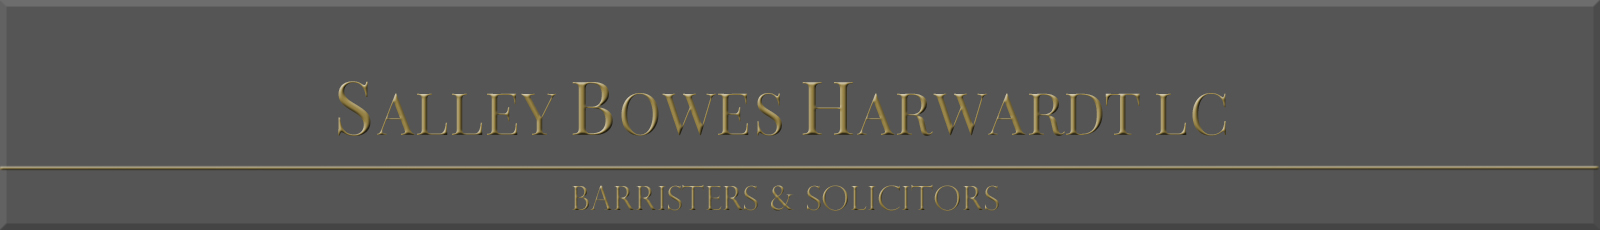 Salley Bowes Harwardt Law Corp.